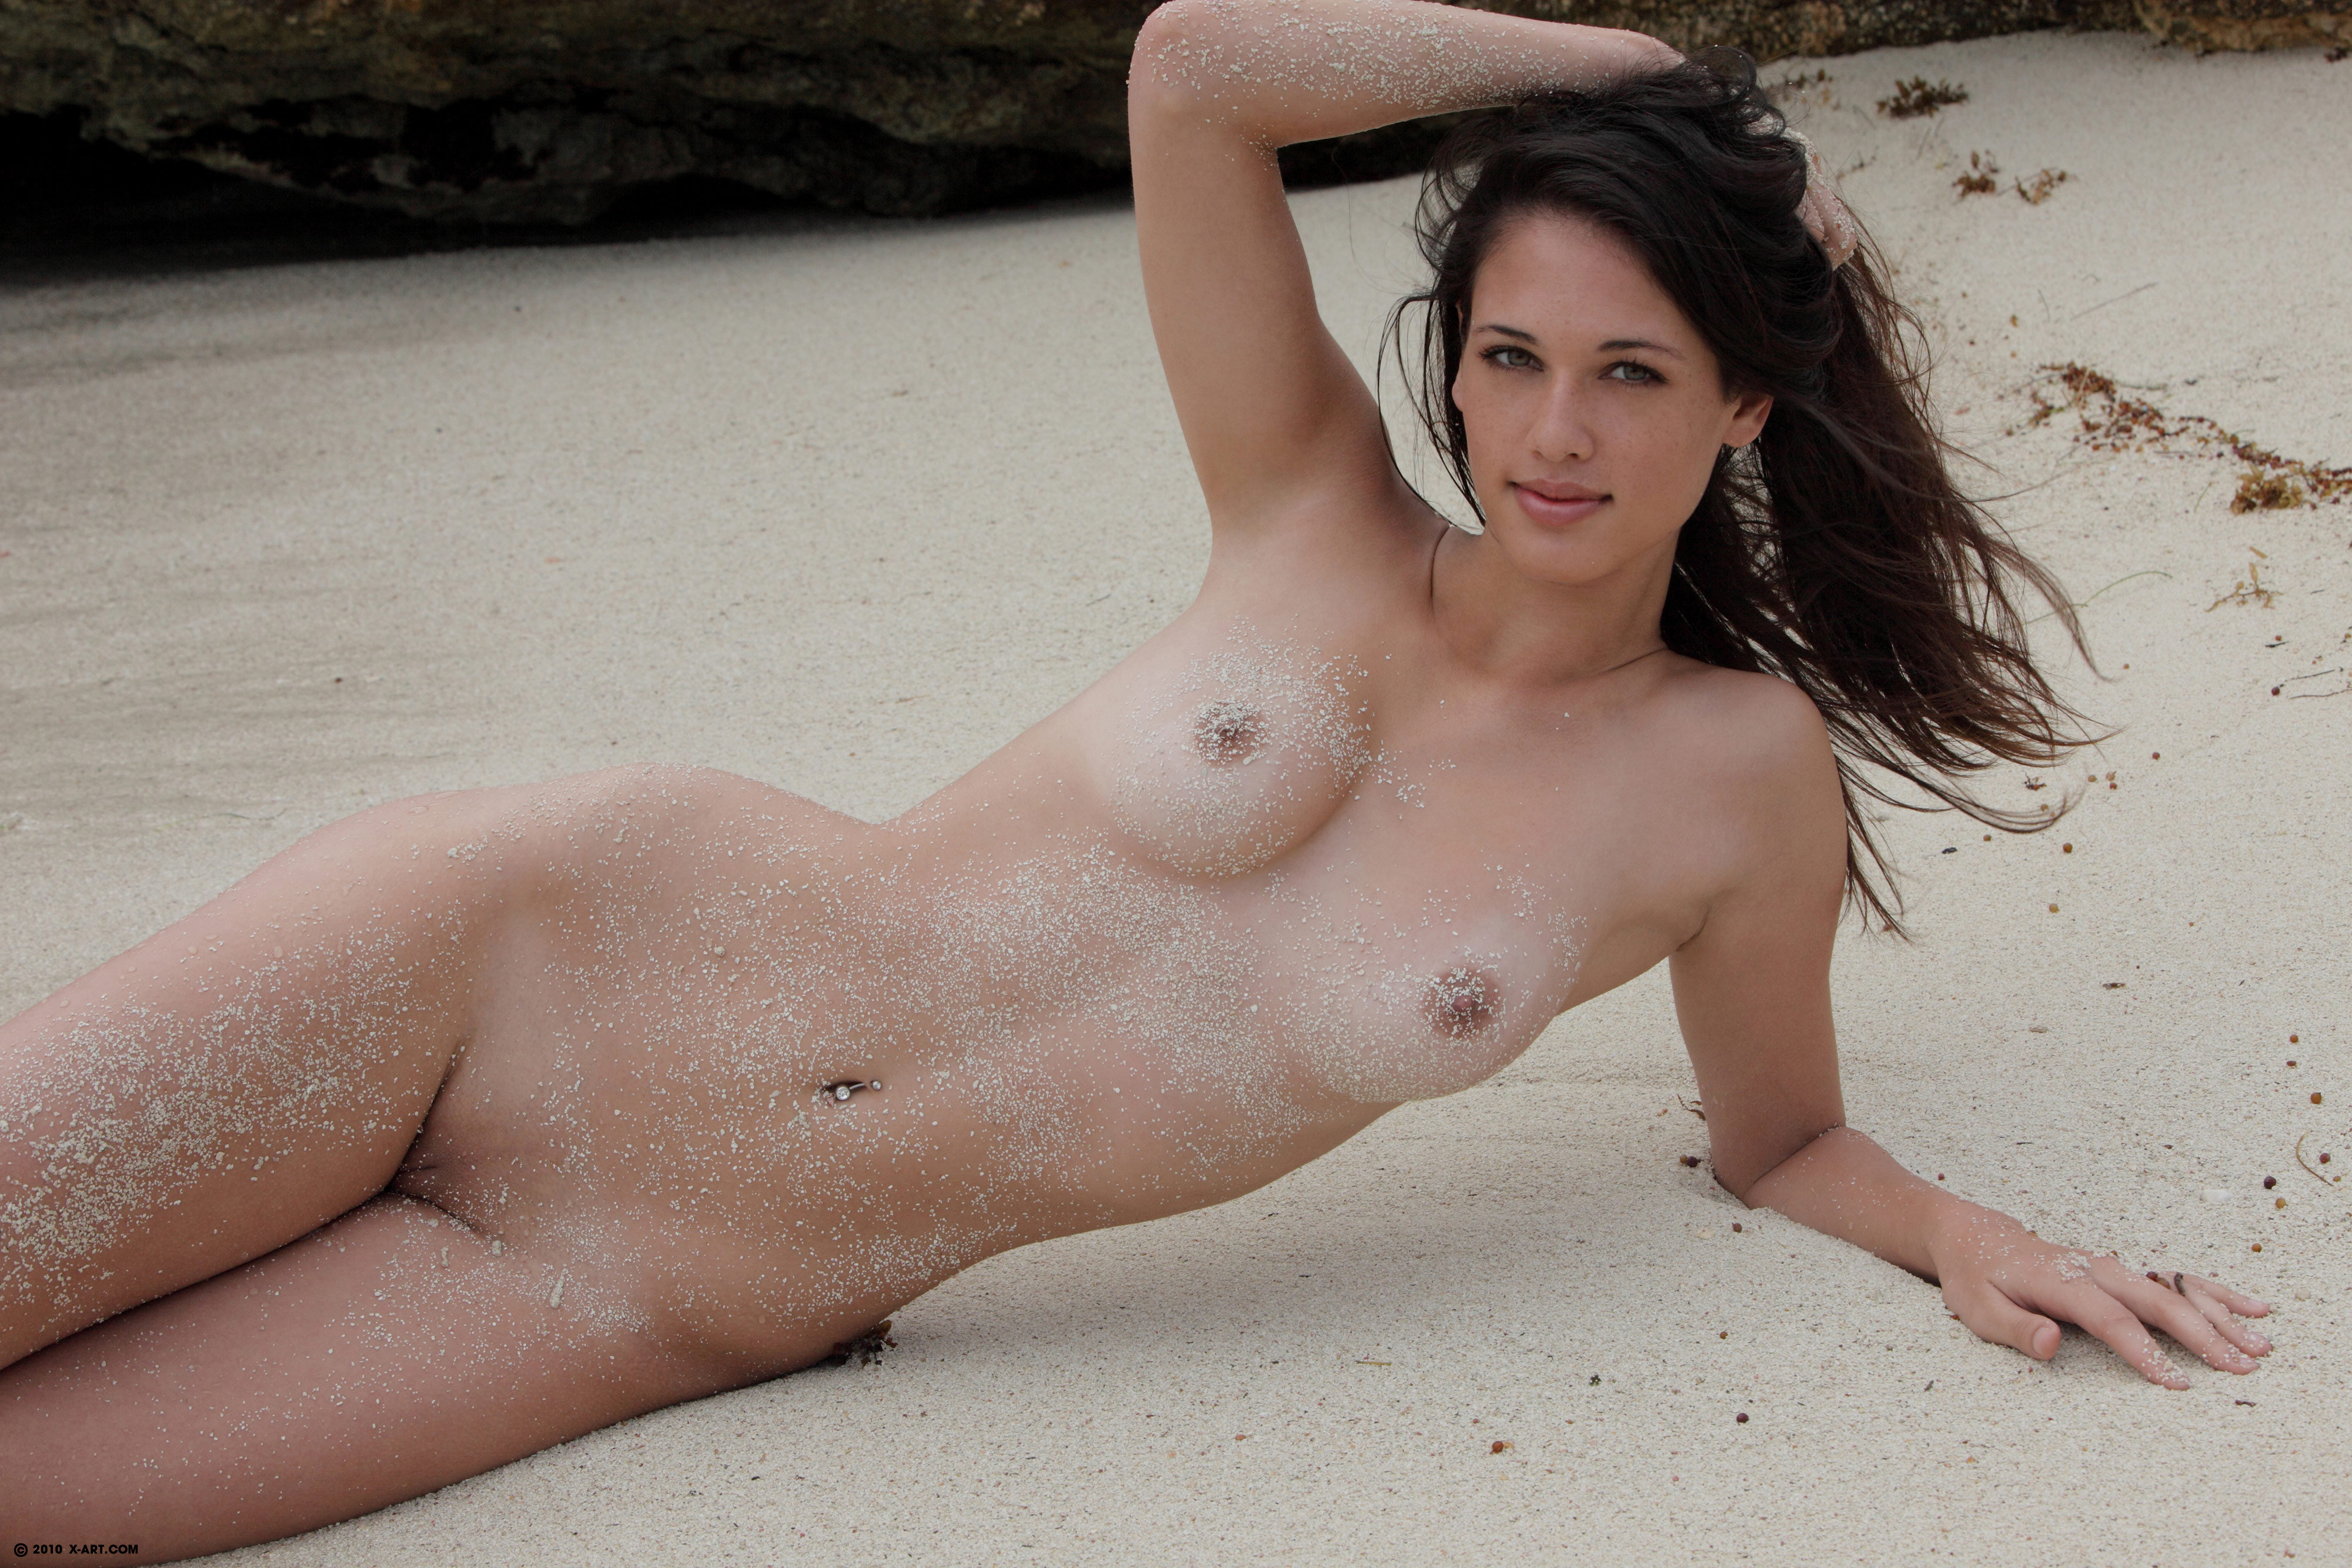 Get ashley graham natural and curvy top model porno for free